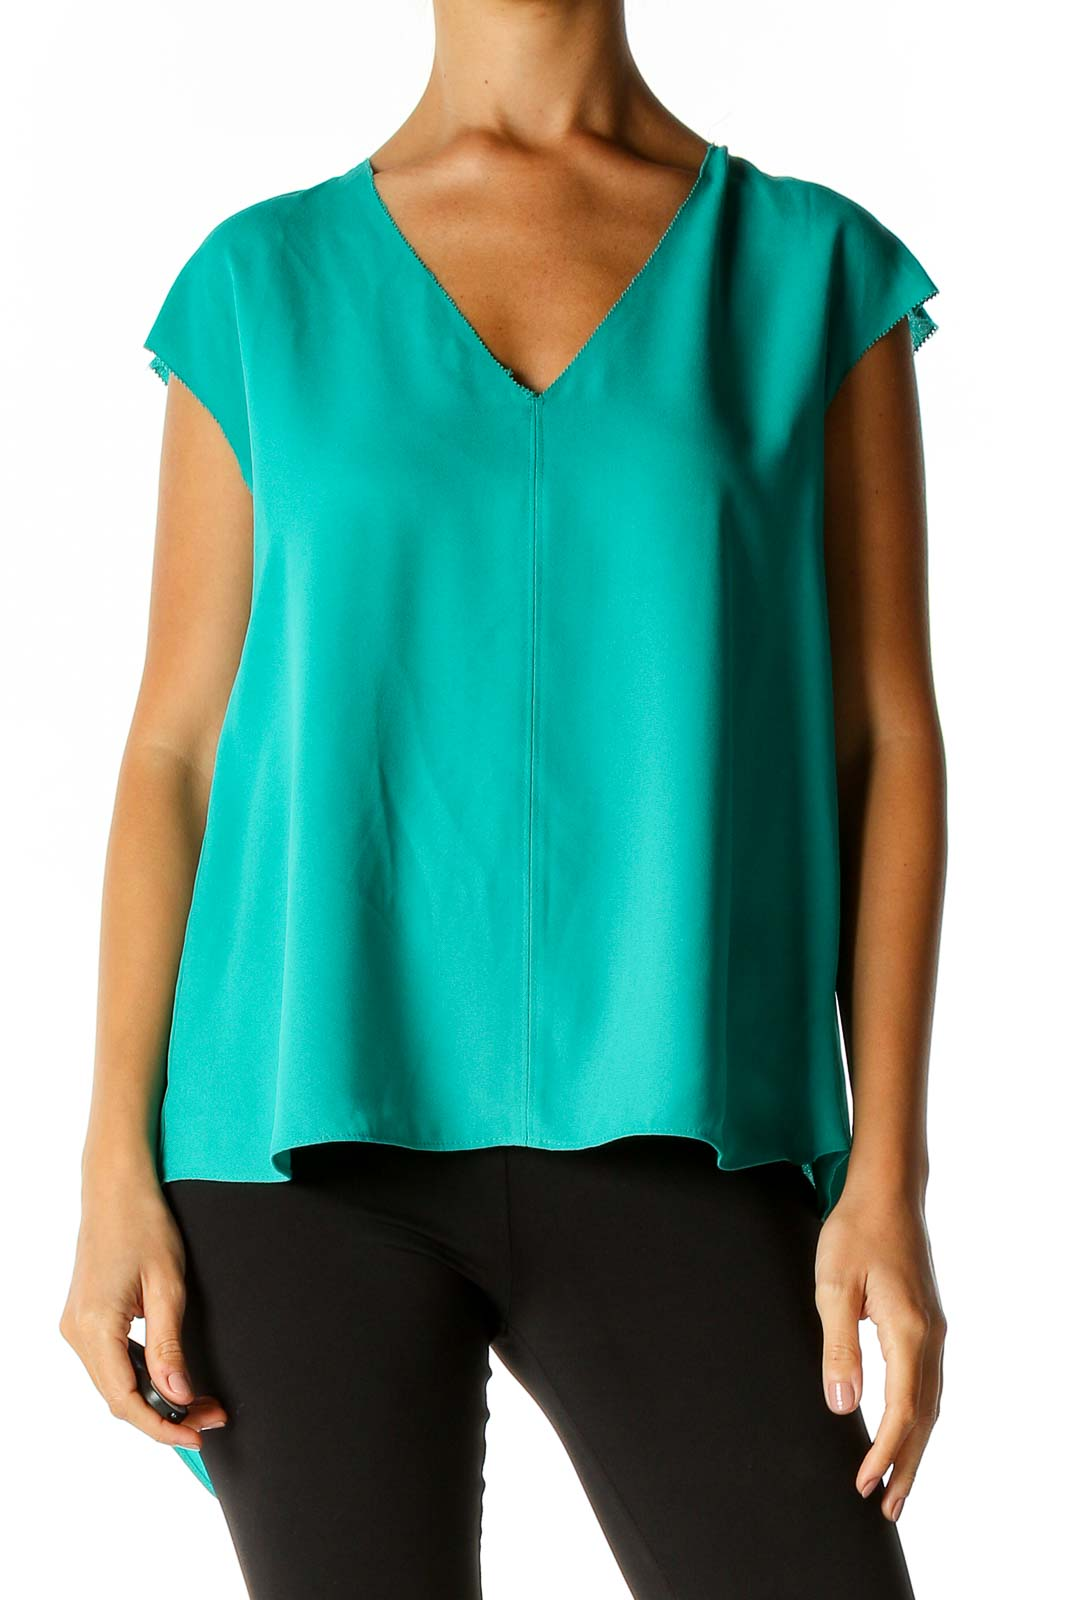 Green Solid Brunch Blouse Front